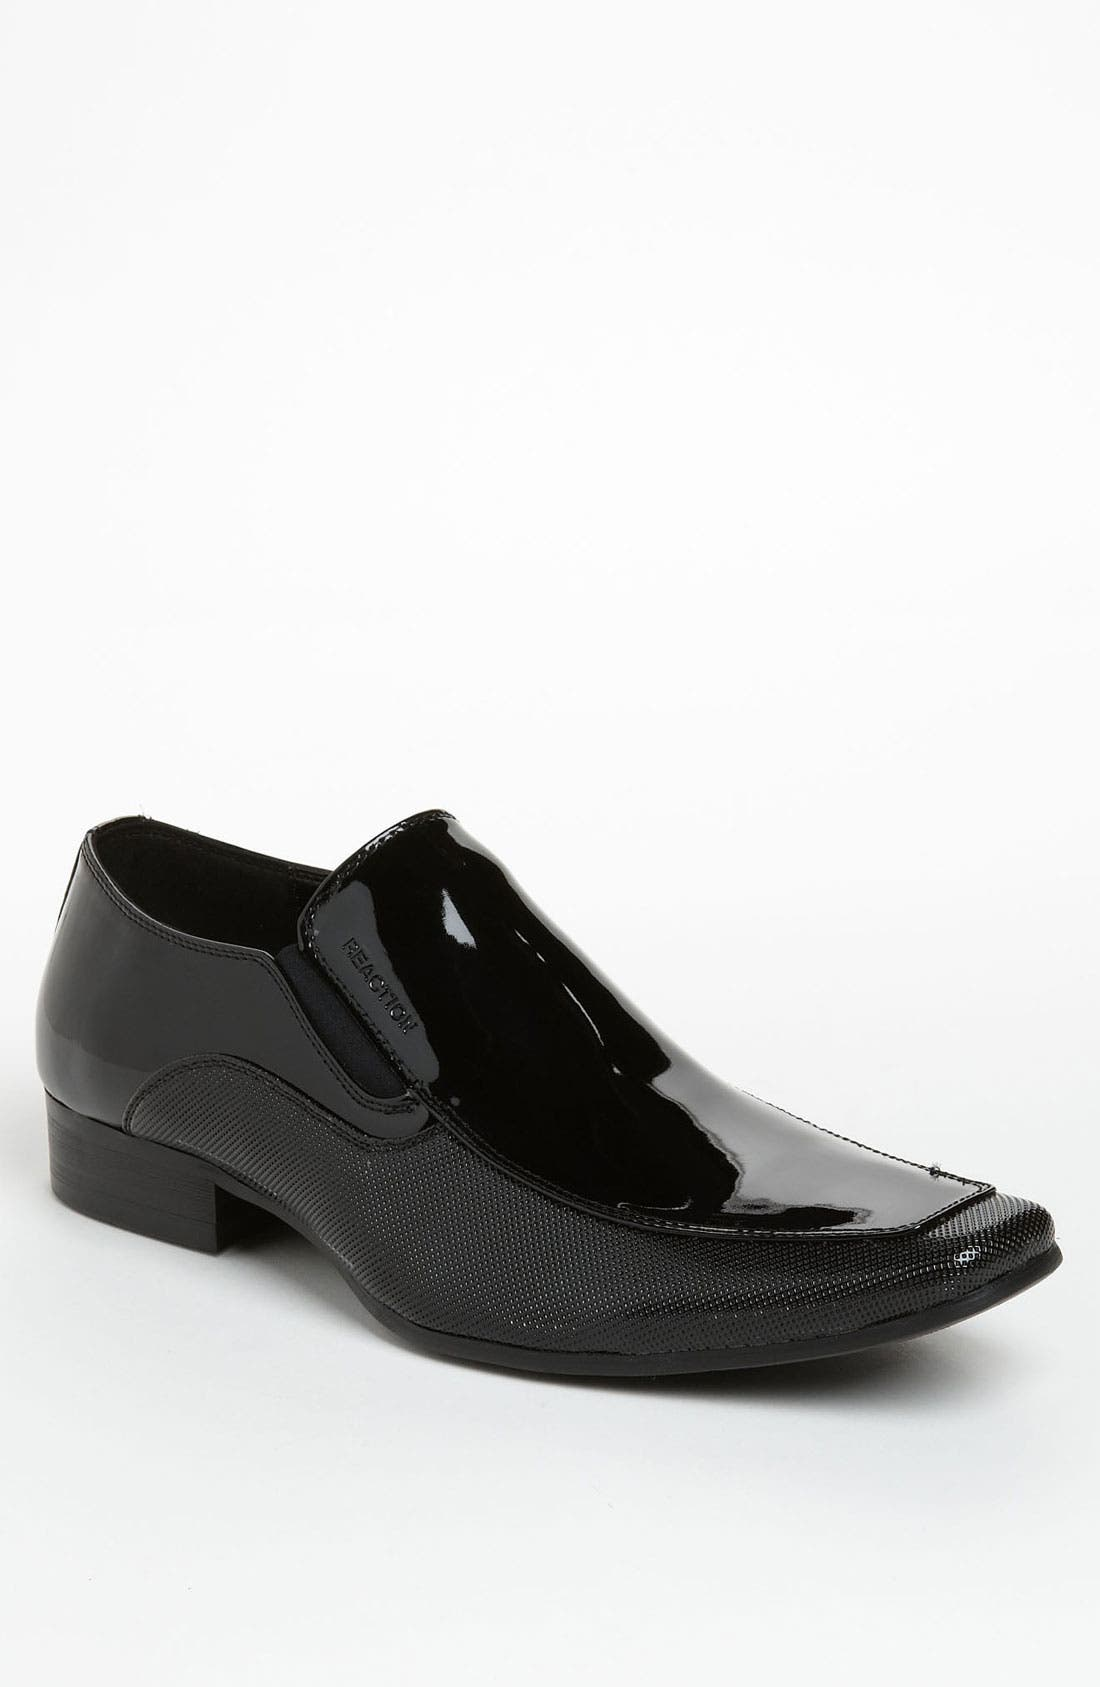 Alternate Image 1 Selected - Kenneth Cole Reaction 'Income Tux' Loafer